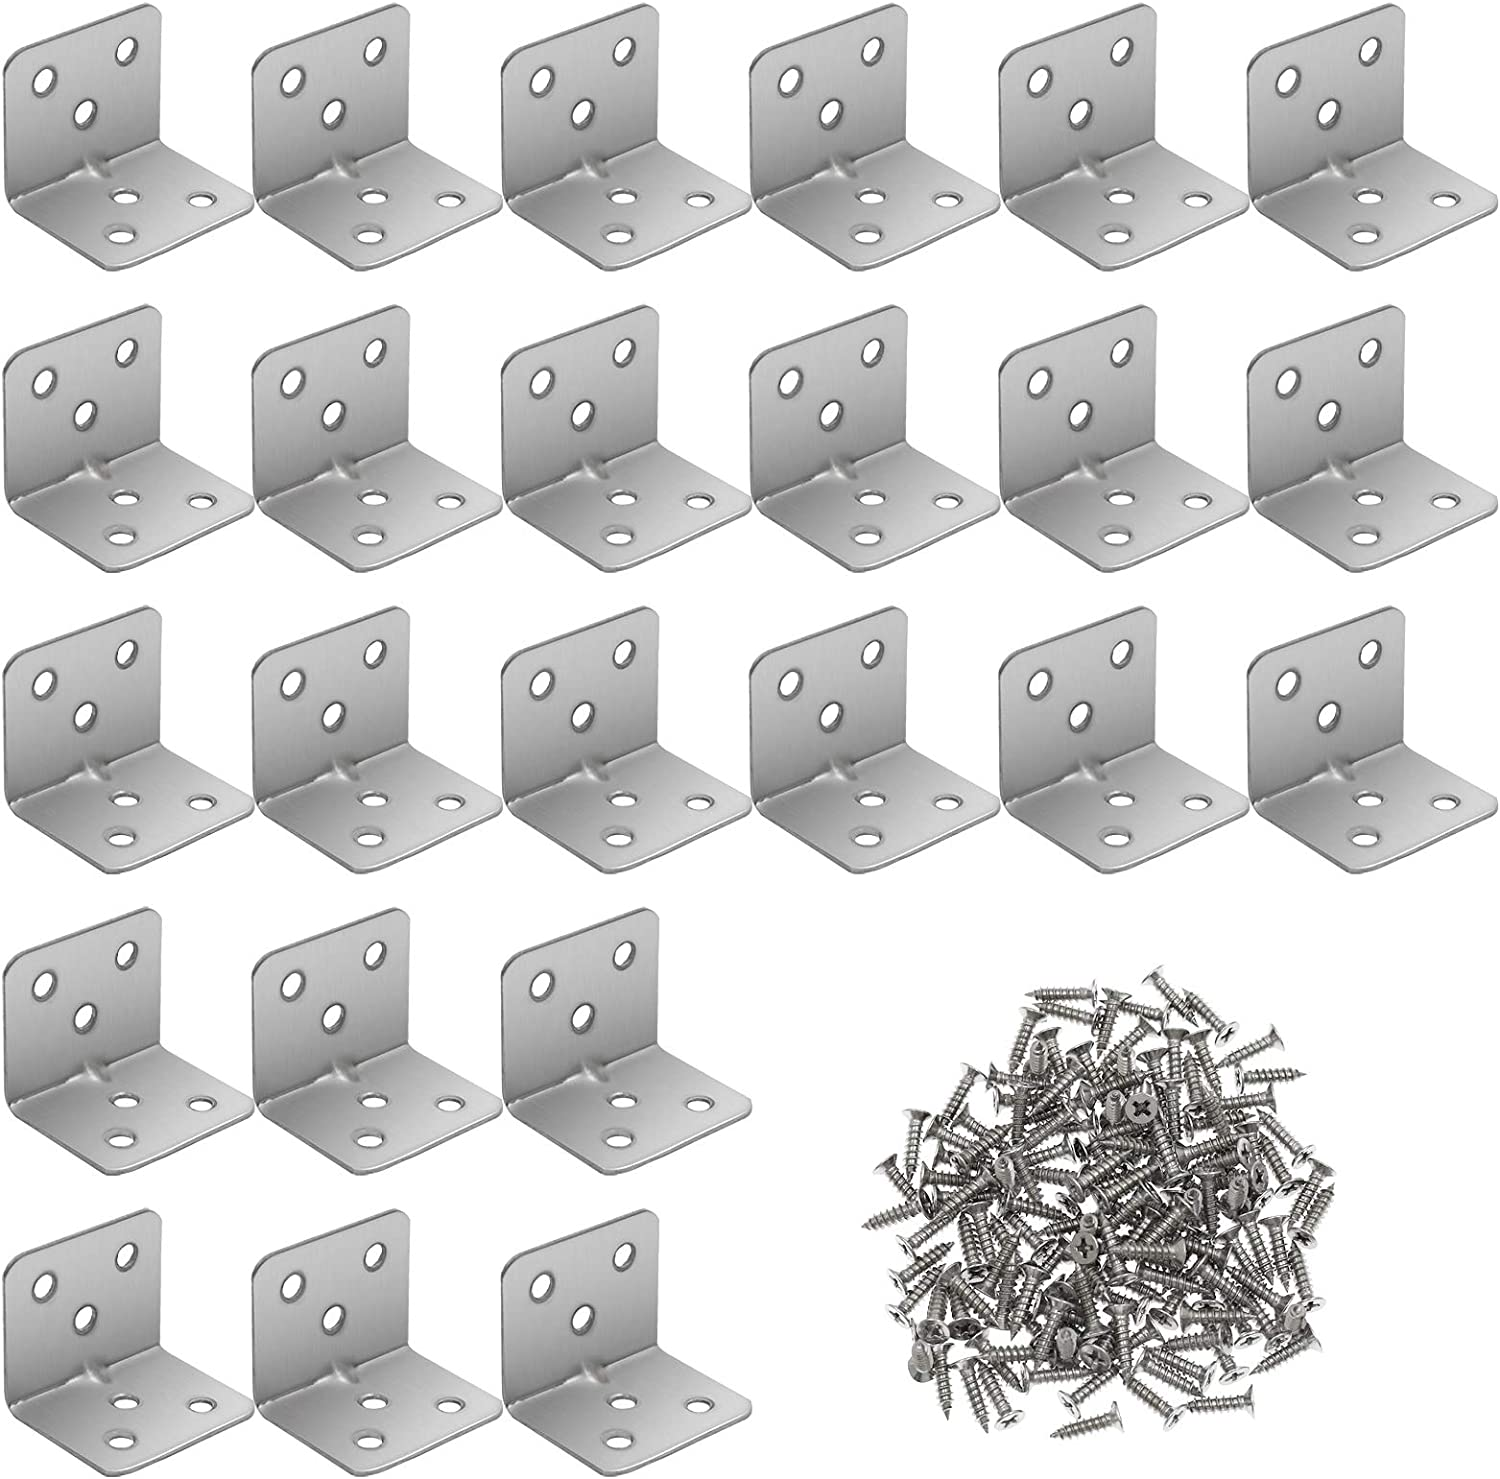 "Furcoitur 24Pcs Stainless Steel L Corner Brace Heavy Duty Corner Bracket 90 Degree Joint Right Angle L Shape Bracket for Wood Cabinets Furniture Shelves, 1.2"" x 1.2"" x 1.5"""